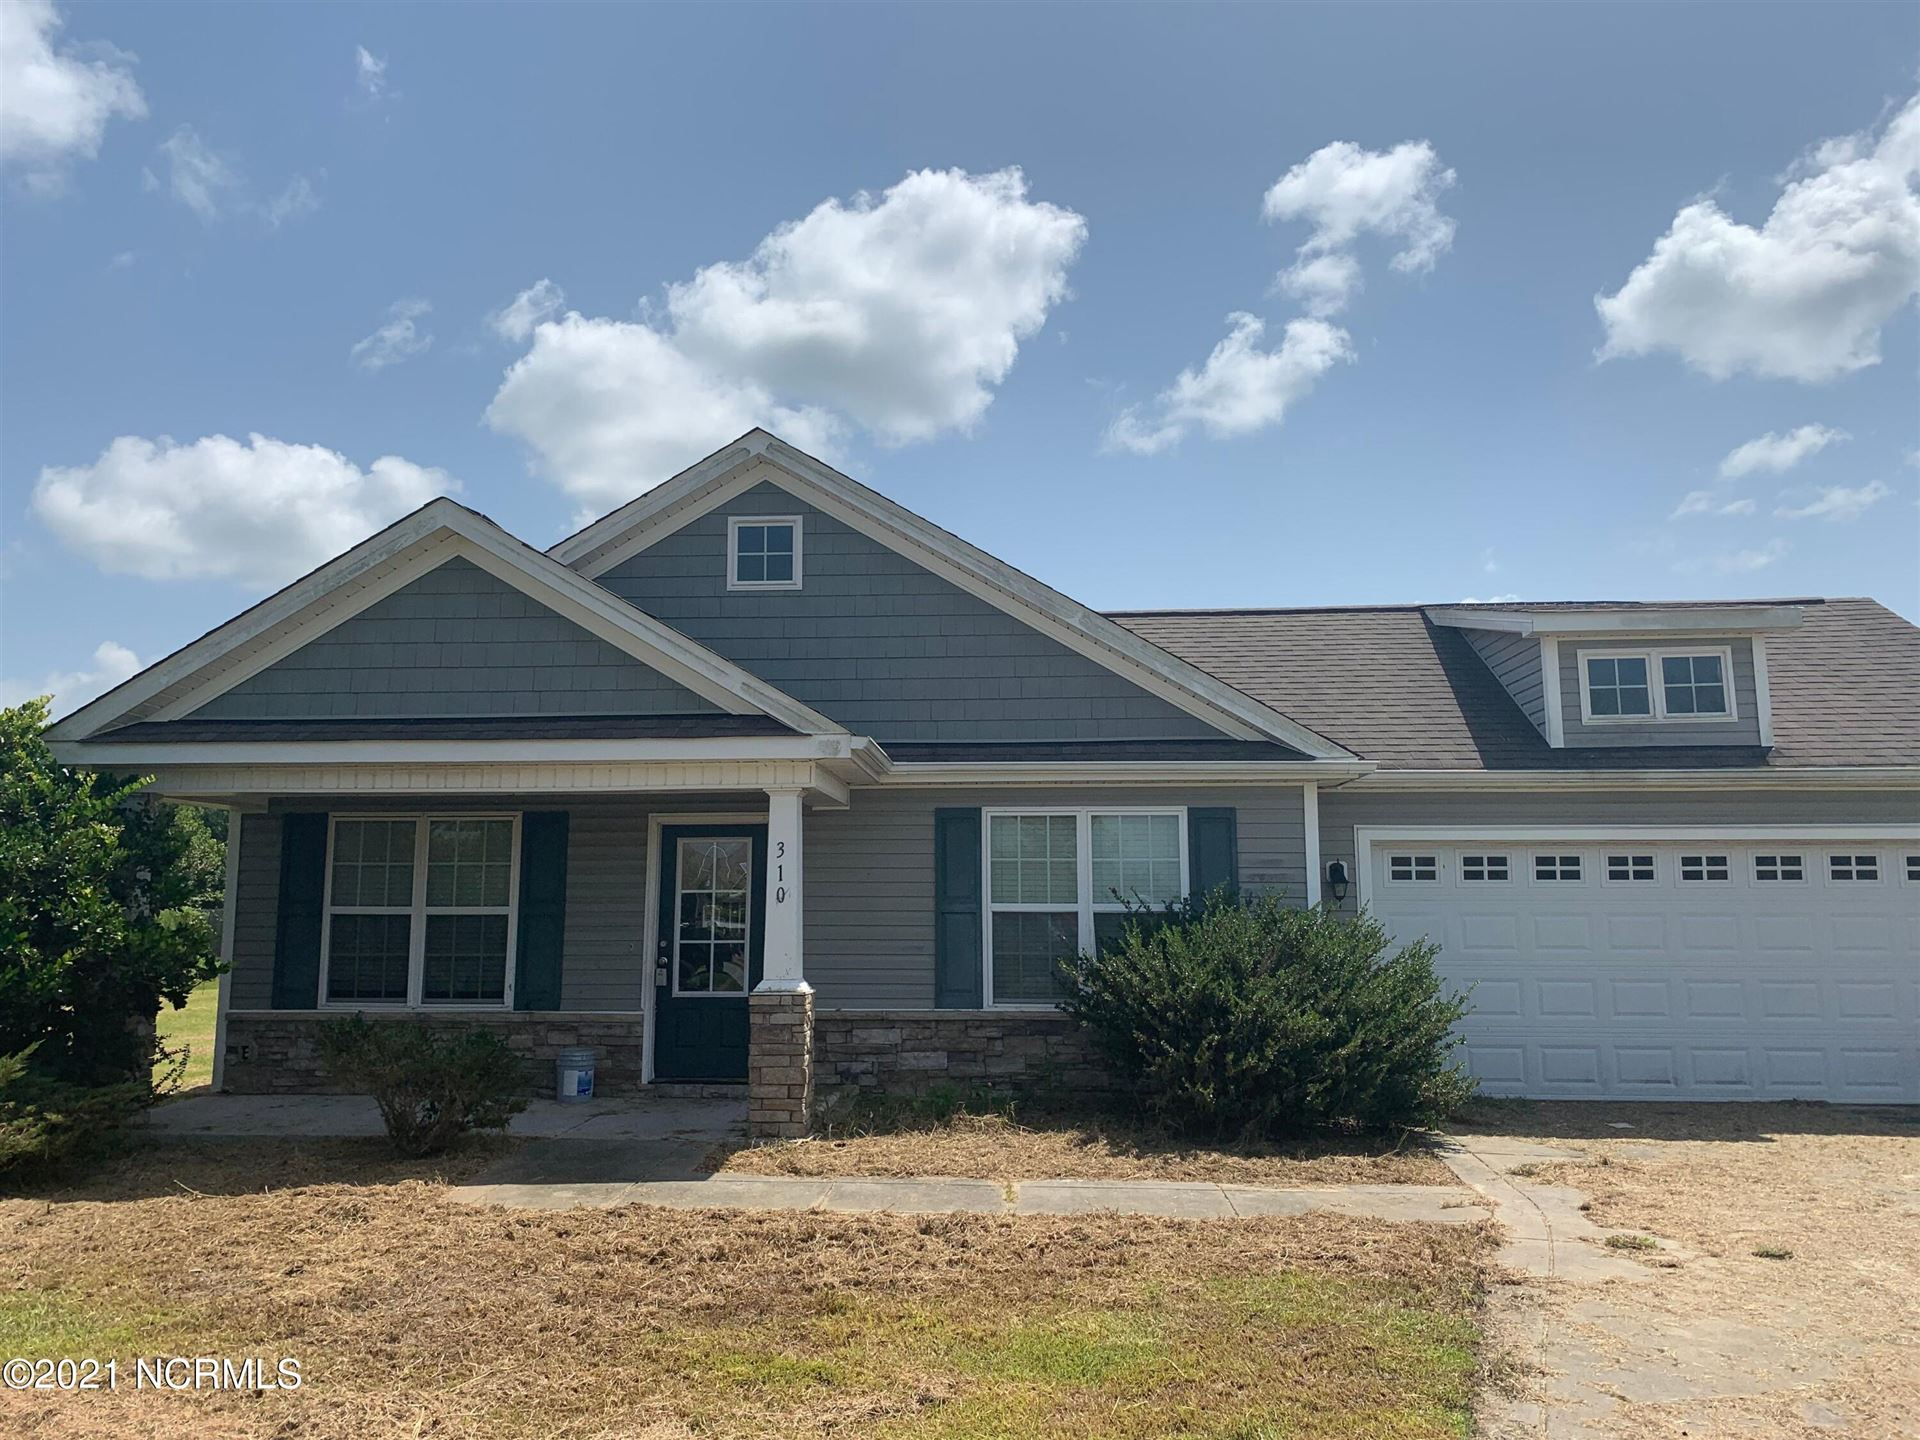 Photo of 310 Connie Court, Beulaville, NC 28518 (MLS # 100288437)